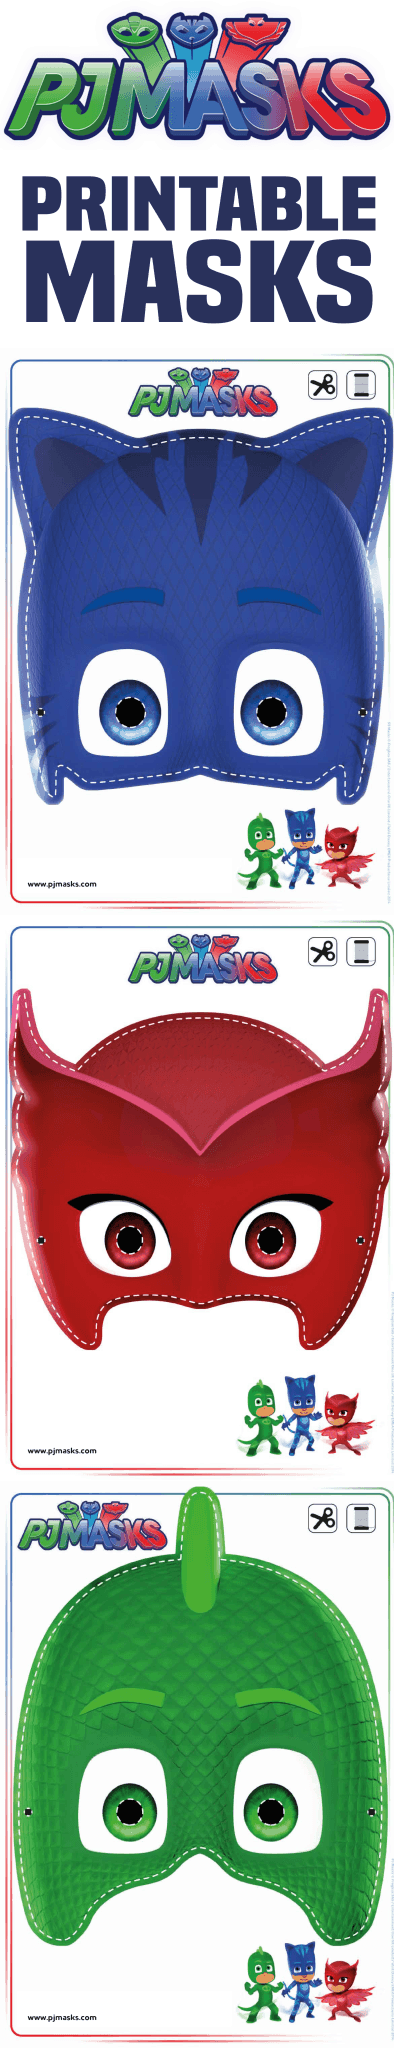 graphic about Pj Masks Printable Images named Printables - PJ Masks Owlette, Gekko, Catboy Masks Existence